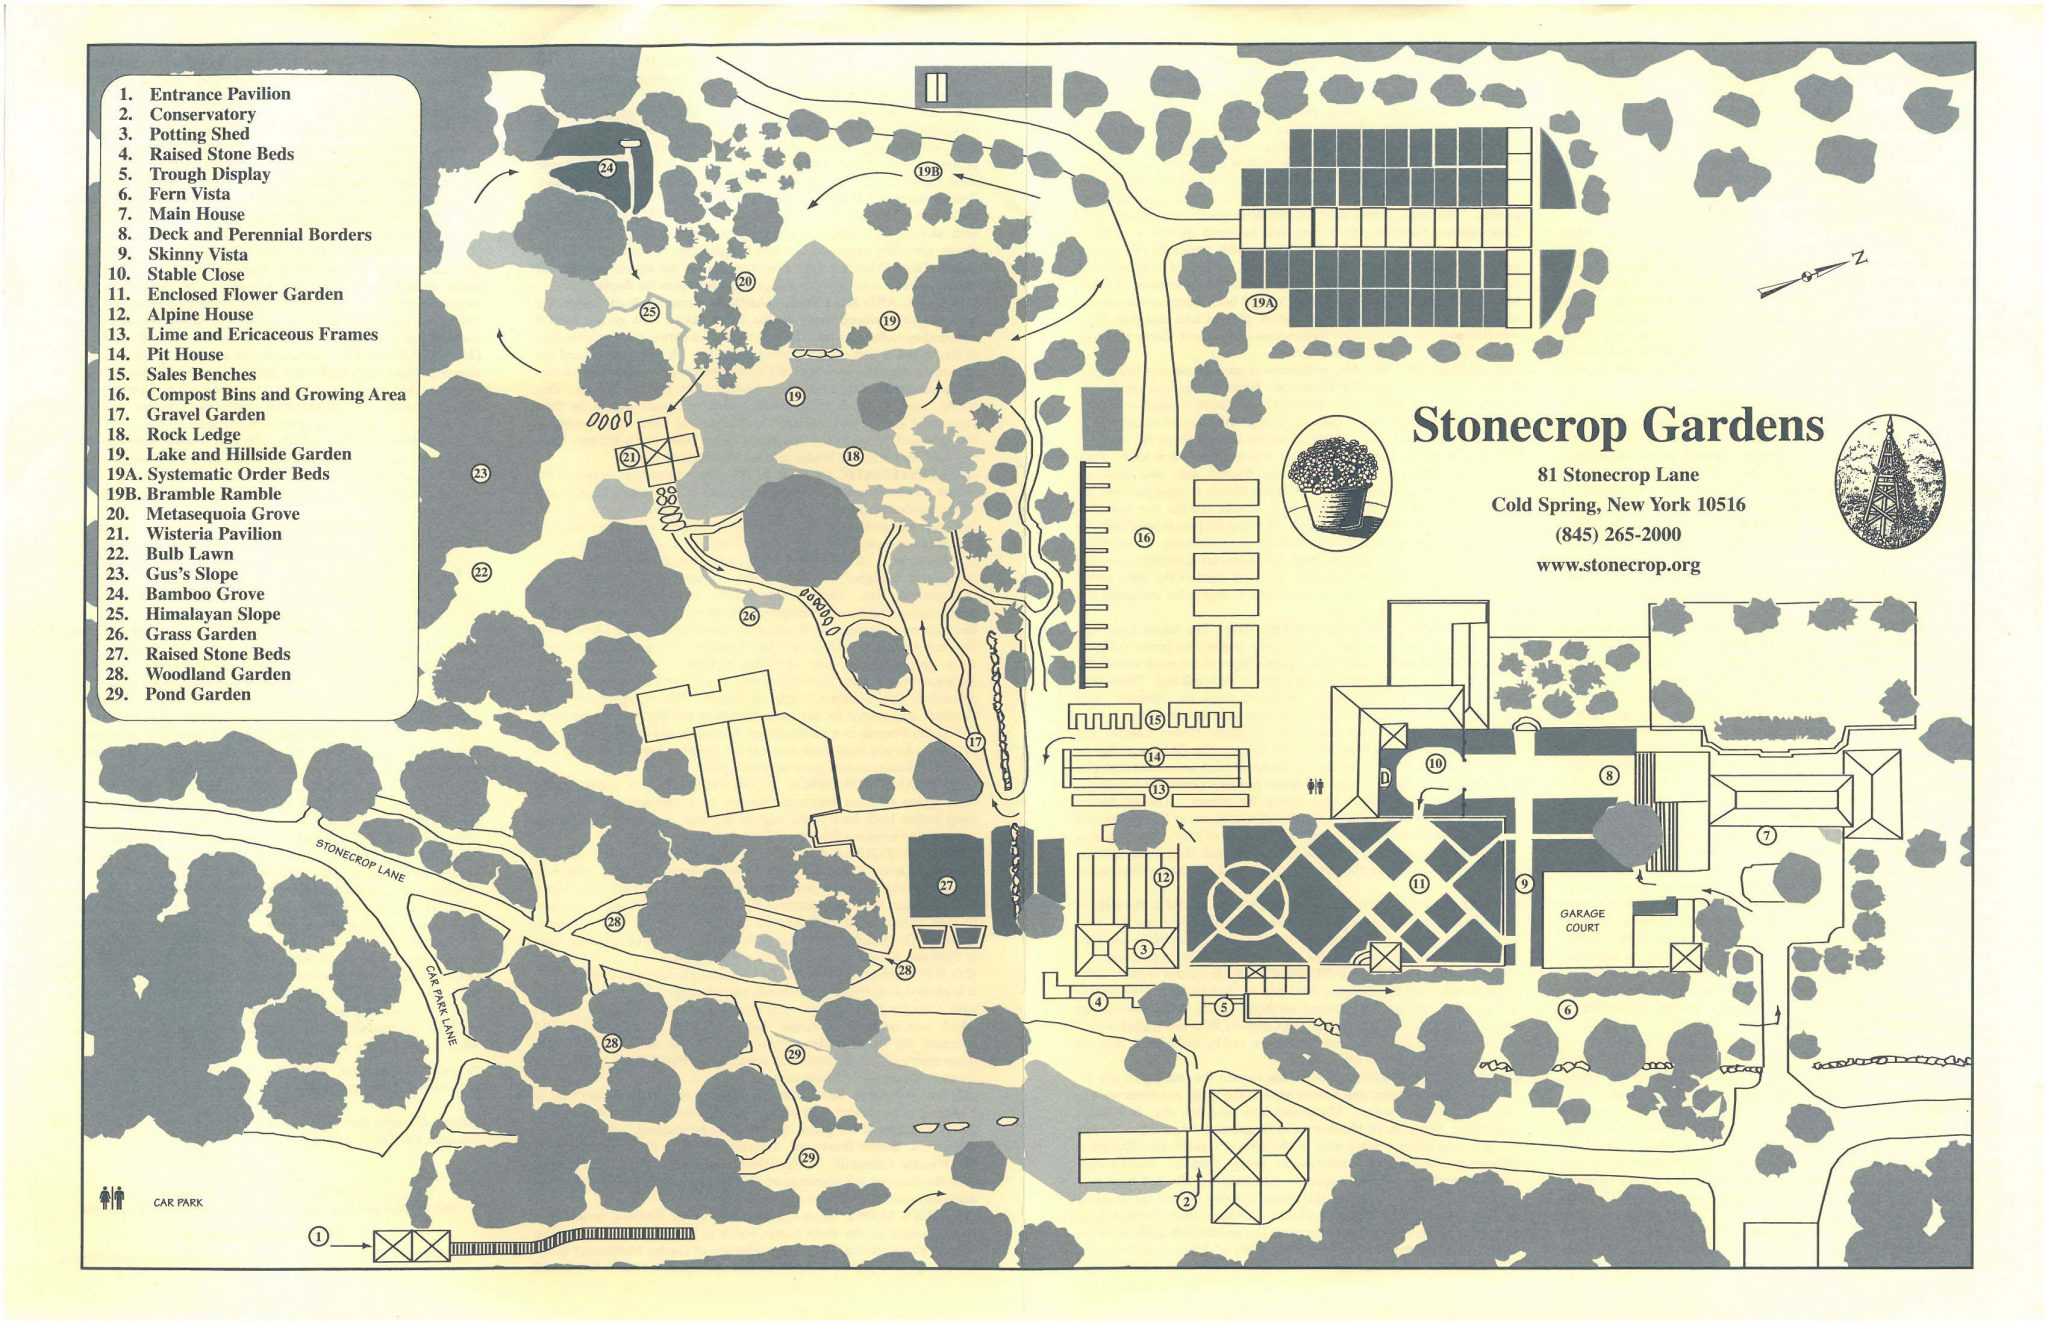 Map of Stonecrop Gardens, in Cold Spring, New York.